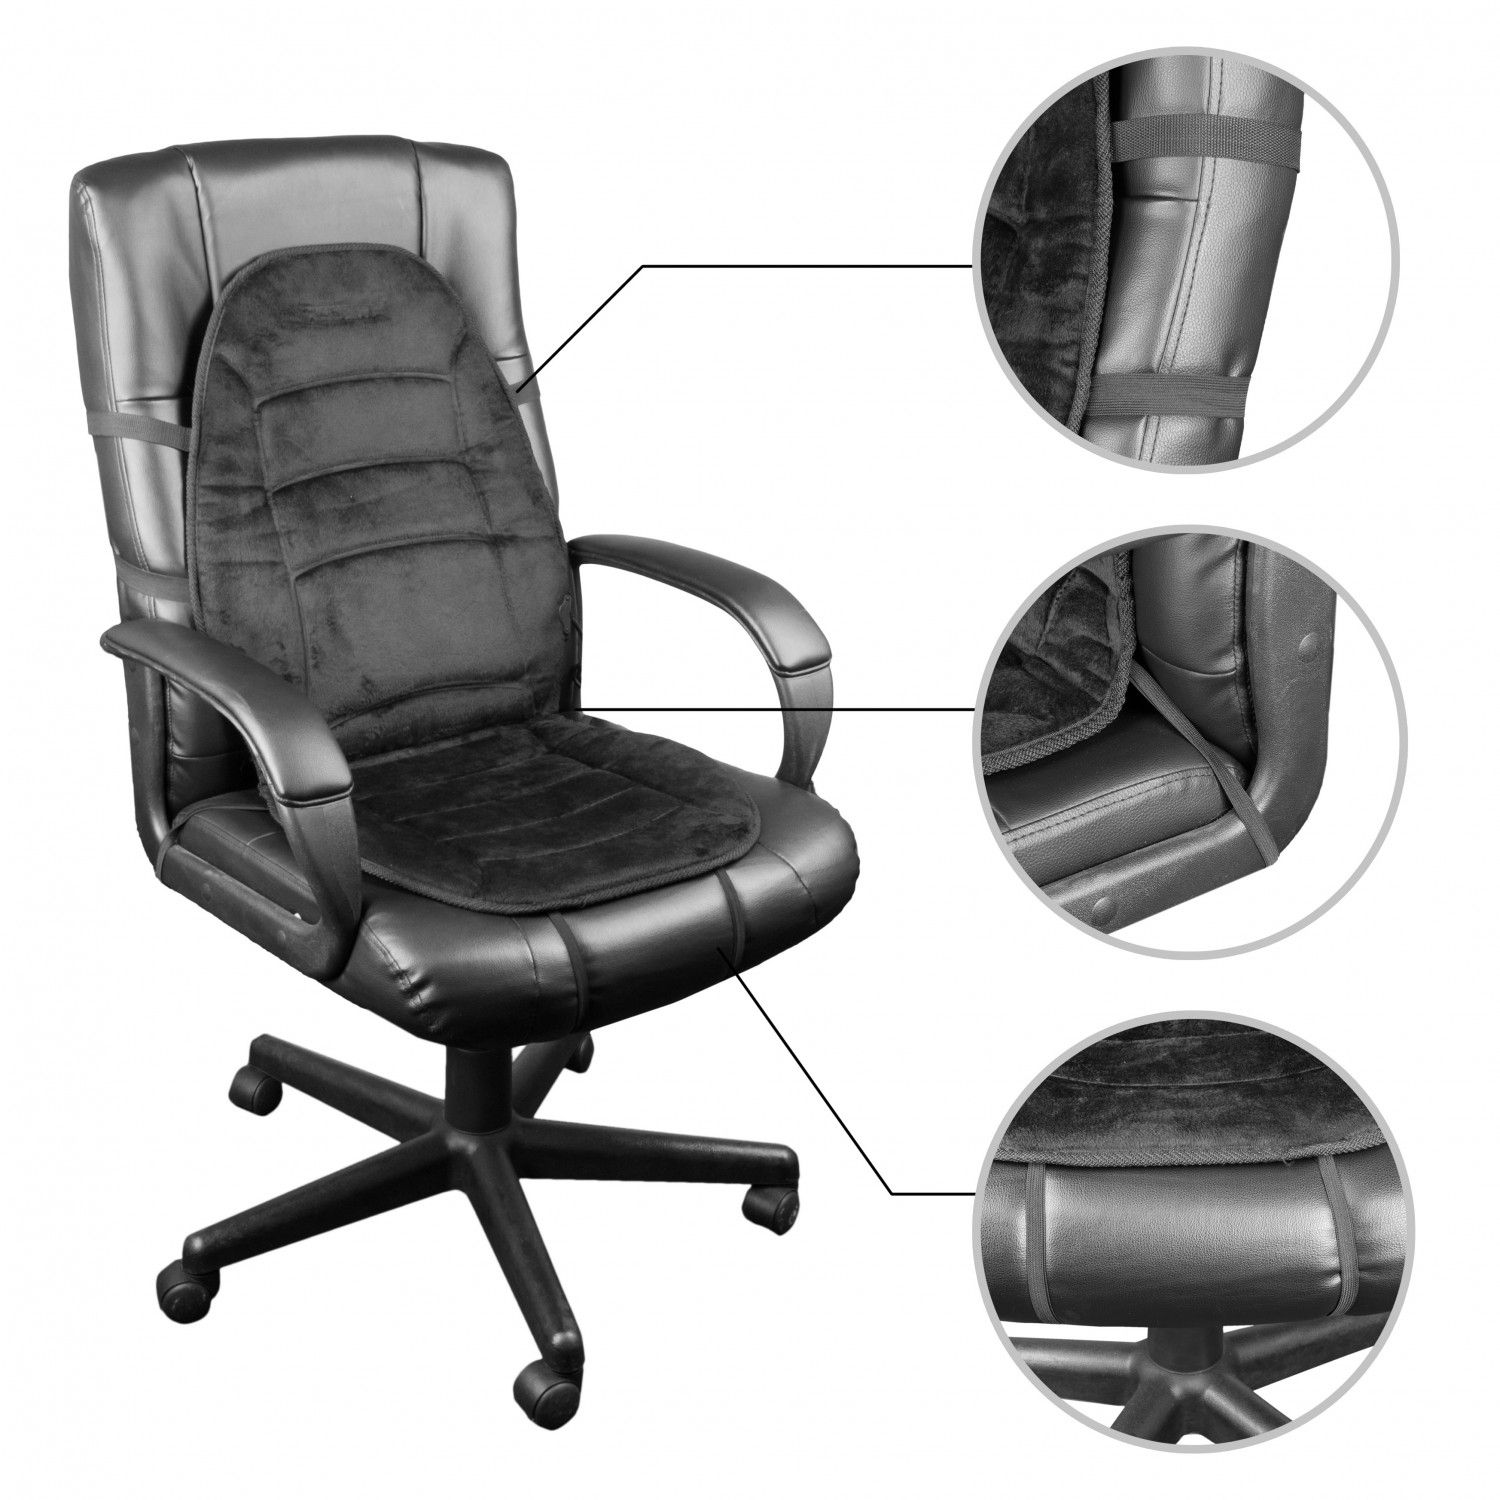 Heated Desk Chair Pad | Gift Ideas | Pinterest | Chair pads, Desks on heated chair cushion, vibration chair, heated chair mat, heated outdoor chair, bathroom chair, vibrating gaming chair, heated clinical chair, china chair, heated back massager for chairs, heated chair cover, heated seat pads for chairs, heated folding chair, heated recliner chairs, heated ergonomic chair, heated bean bag chair, heated desk chair pad, heated massage chair, person on a vibrating chair, heated camp chair, heated lounge chair,